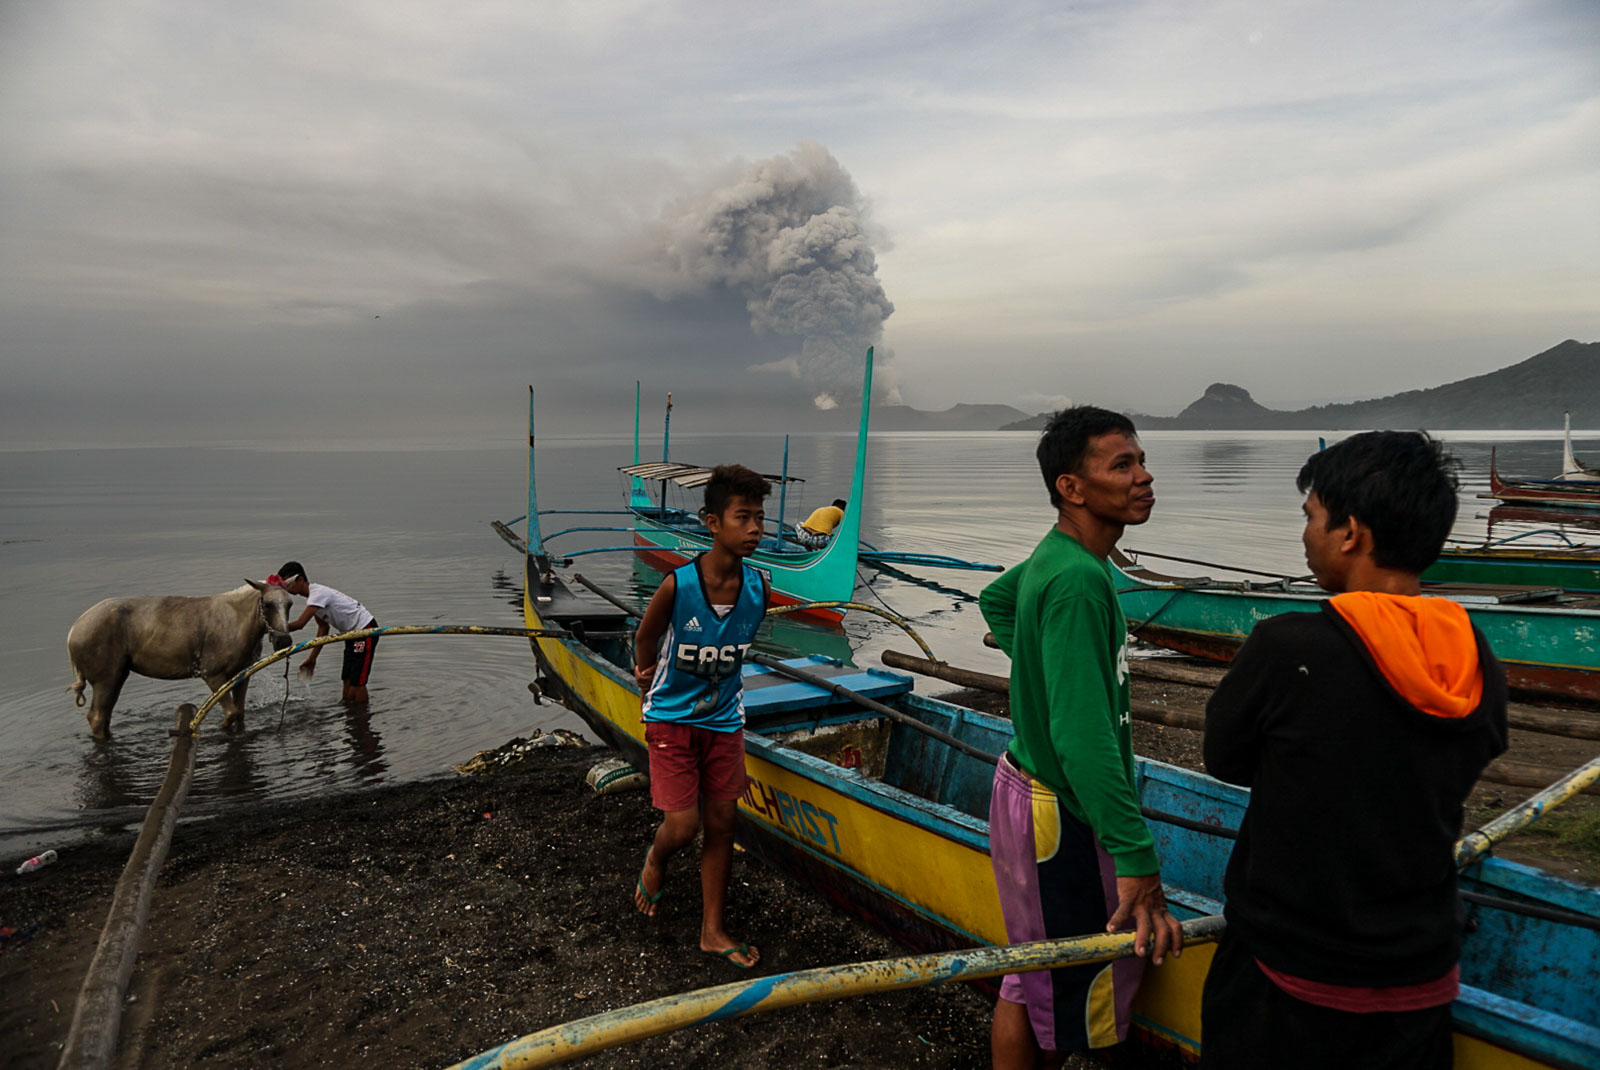 Gov't readies cash loan for farmers affected by Taal Volcano eruption